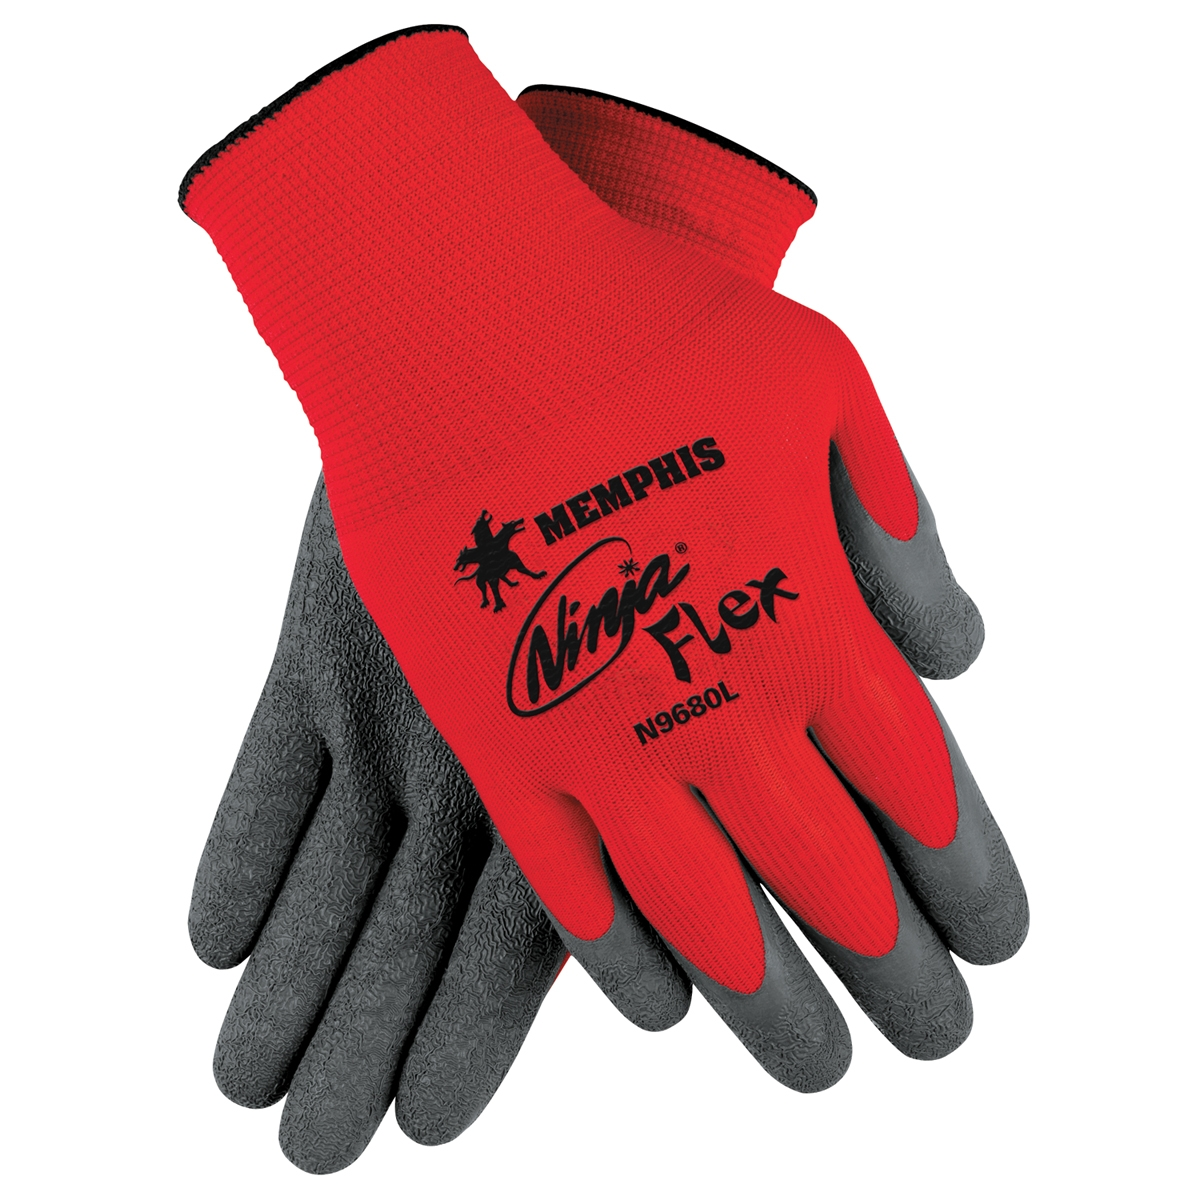 N9680 : MCR Safety Ninja Flex Gloves